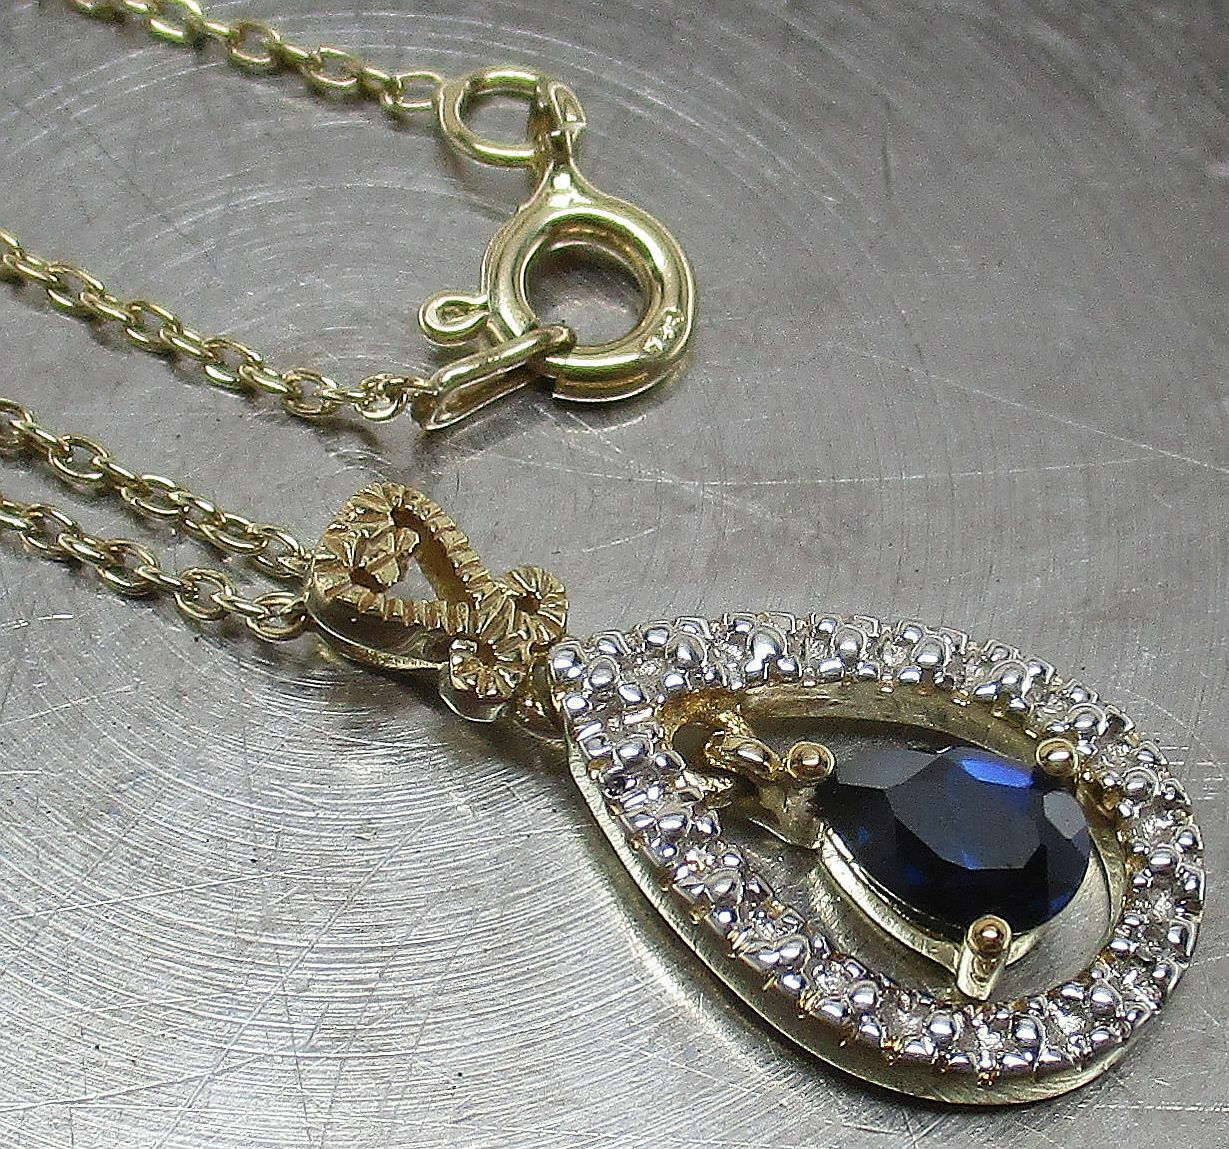 18K GOLD ON 925 STERLING SILVER Pear-Cut SAPPHIRE DIAMOND Pendant Necklace - $4.99